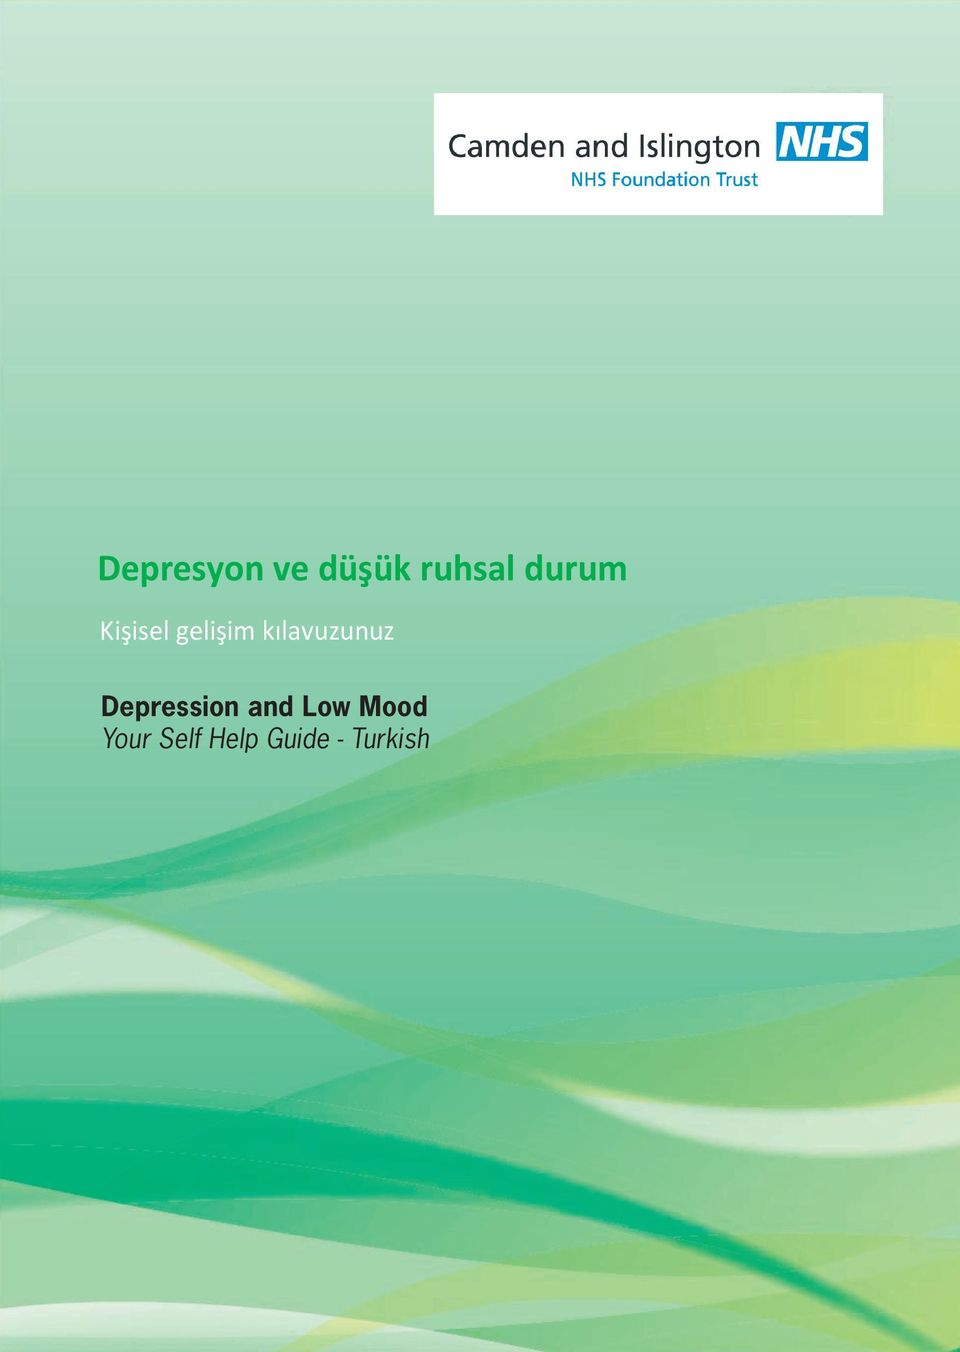 kılavuzunuz Depression and